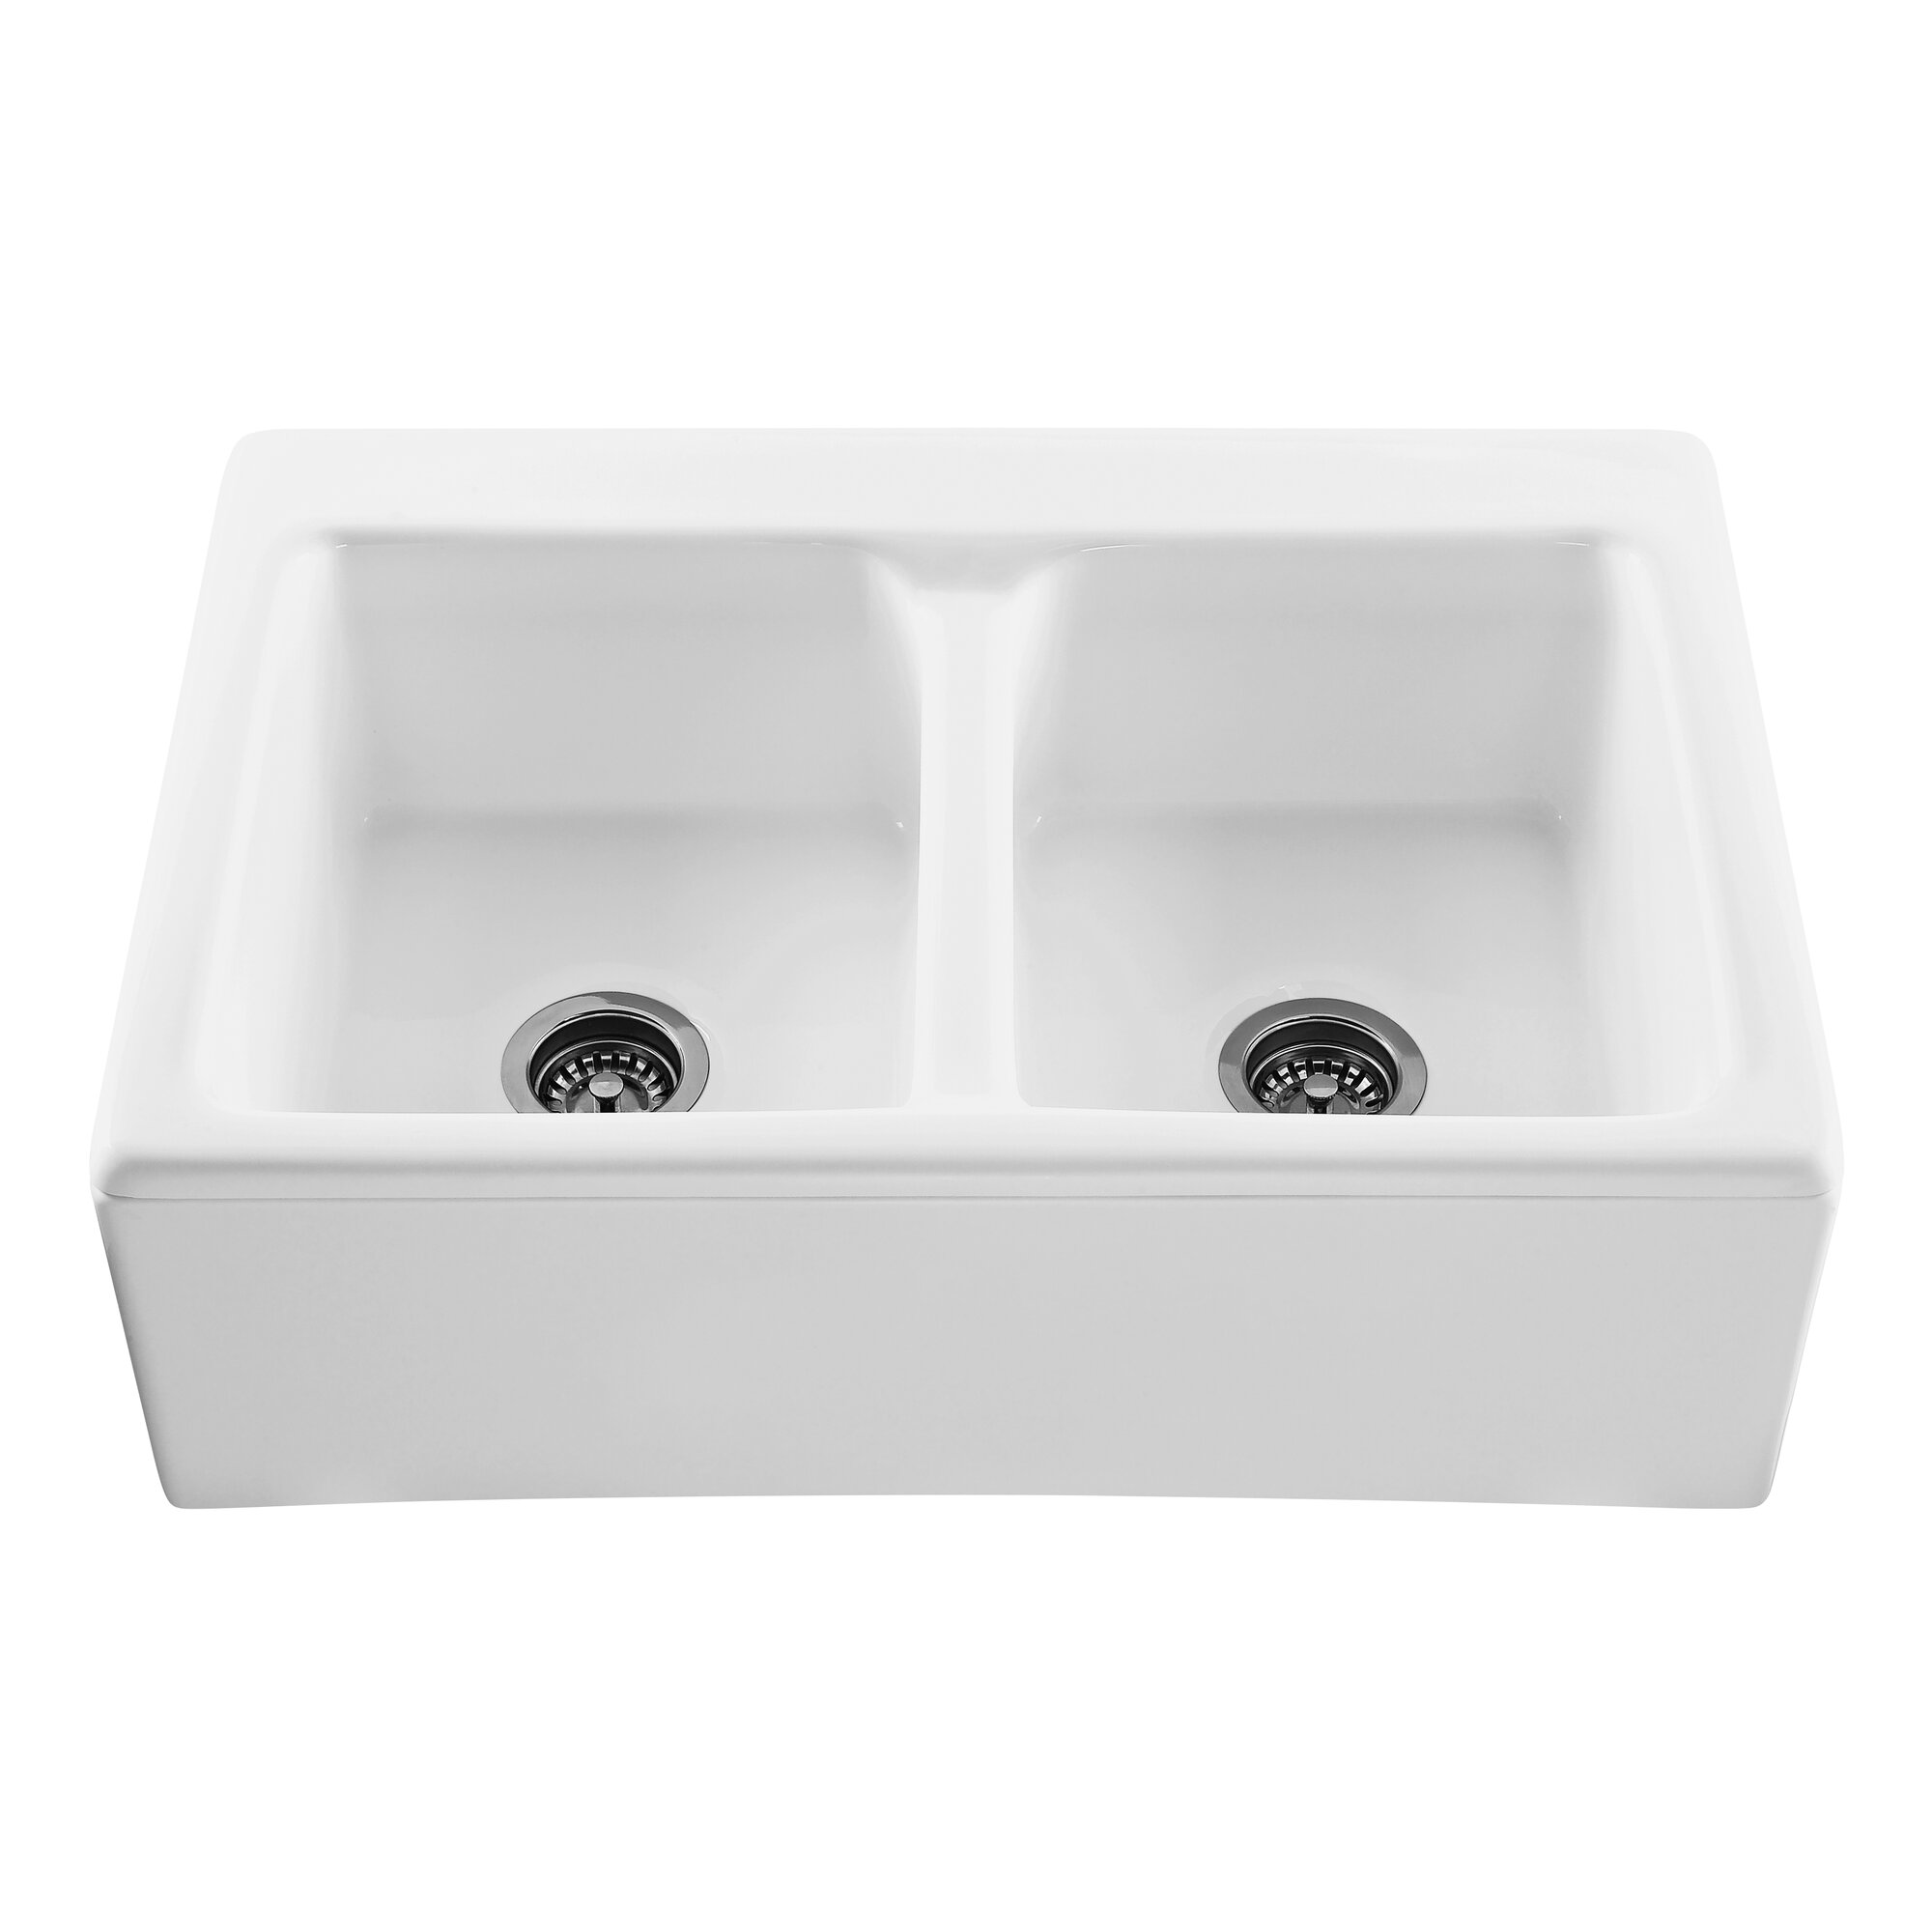 lyle 3325 x 2225 appalachian double bowl kitchen sink - Bowl Kitchen Sink